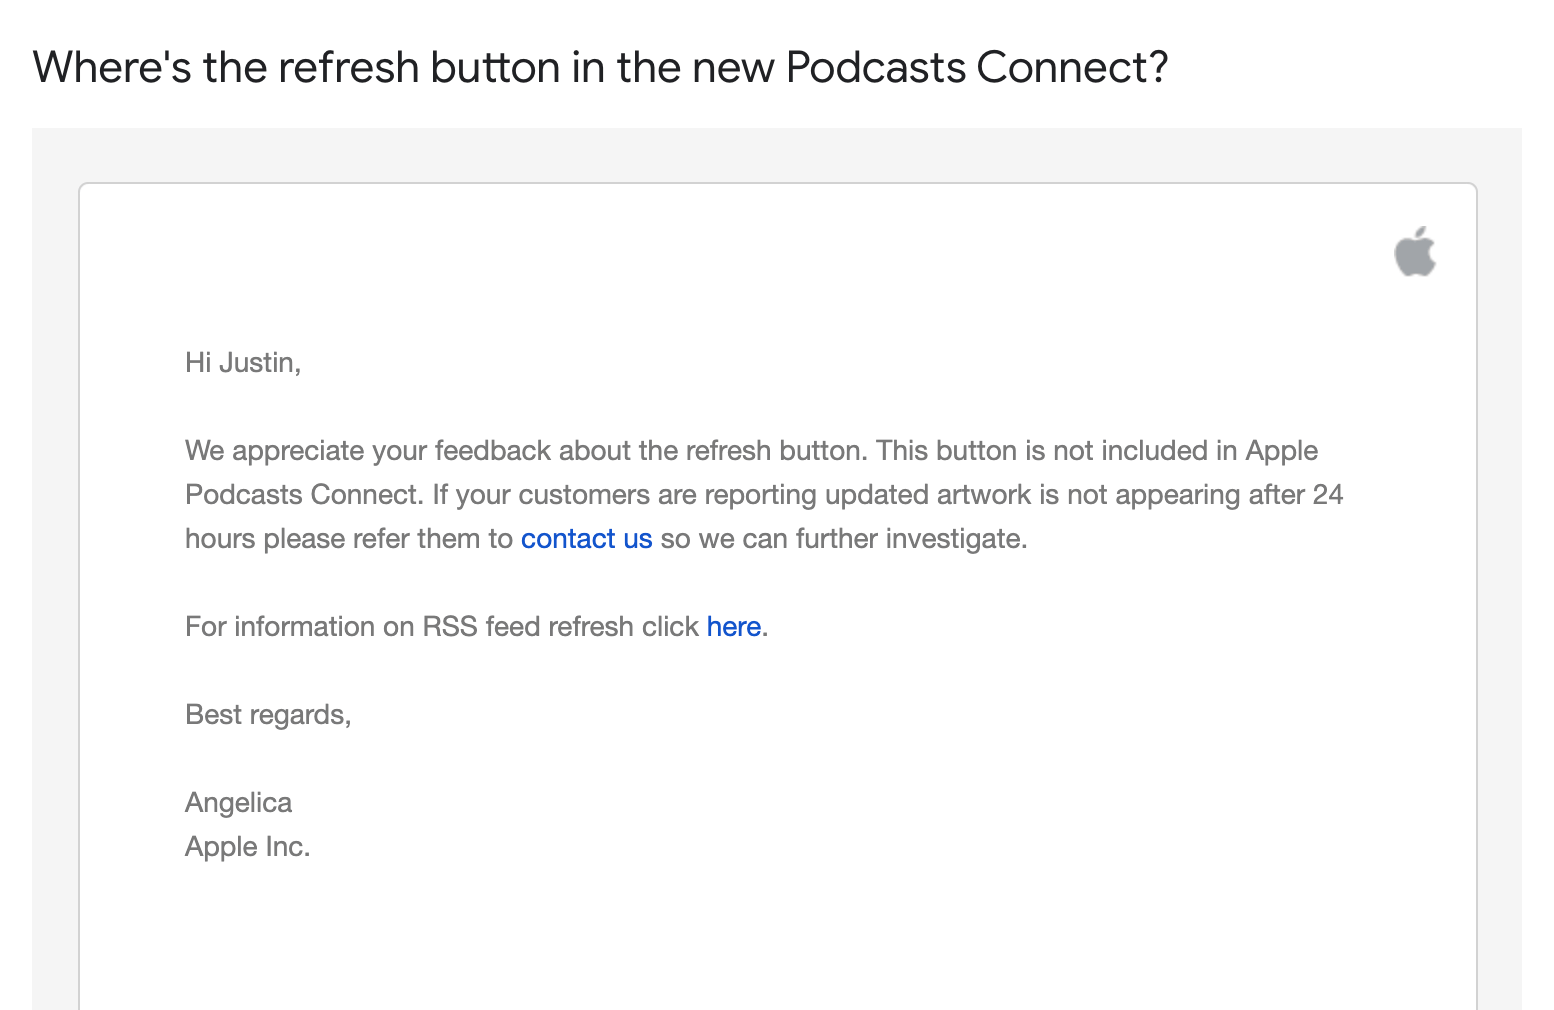 /assets/where-is-refresh-button-in-new-apple-podcast-connect.png